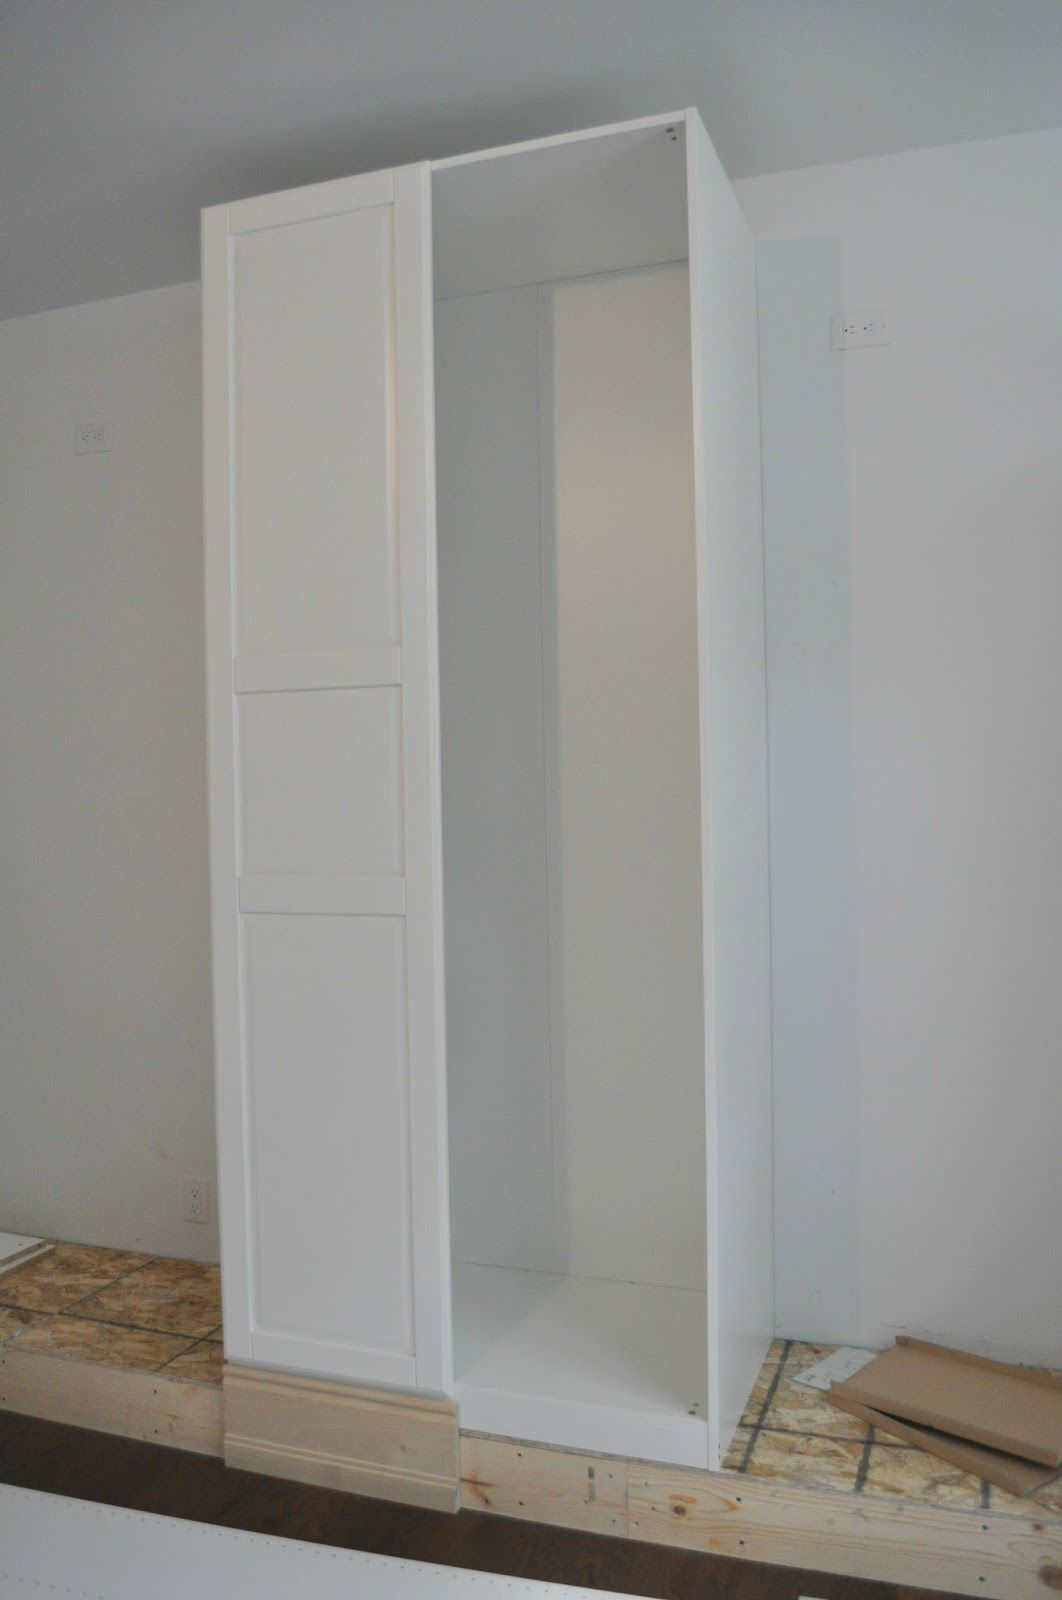 Getting A Customized Look With Ikea Pax Wardrobes Bedroom Updates Loznice Satnik